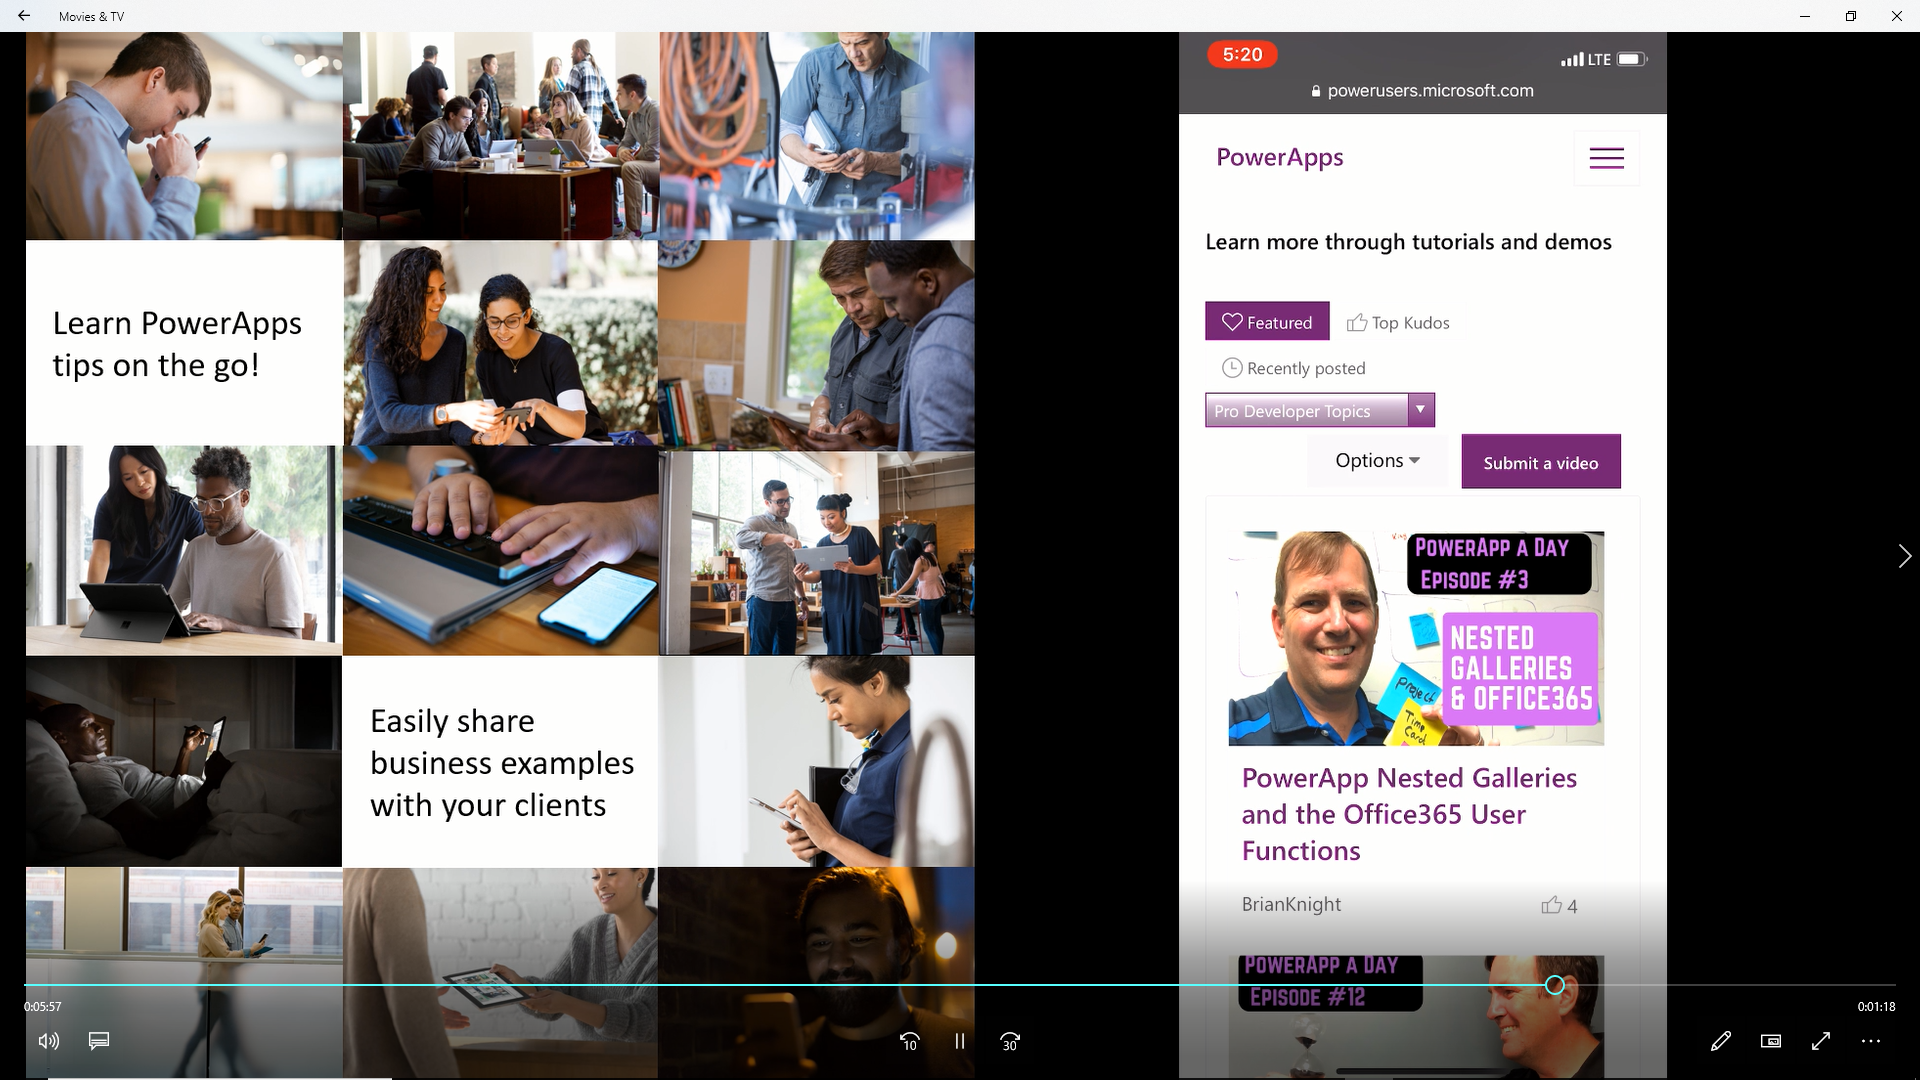 New! PowerApps Community Redesign Enables Mobile Viewing